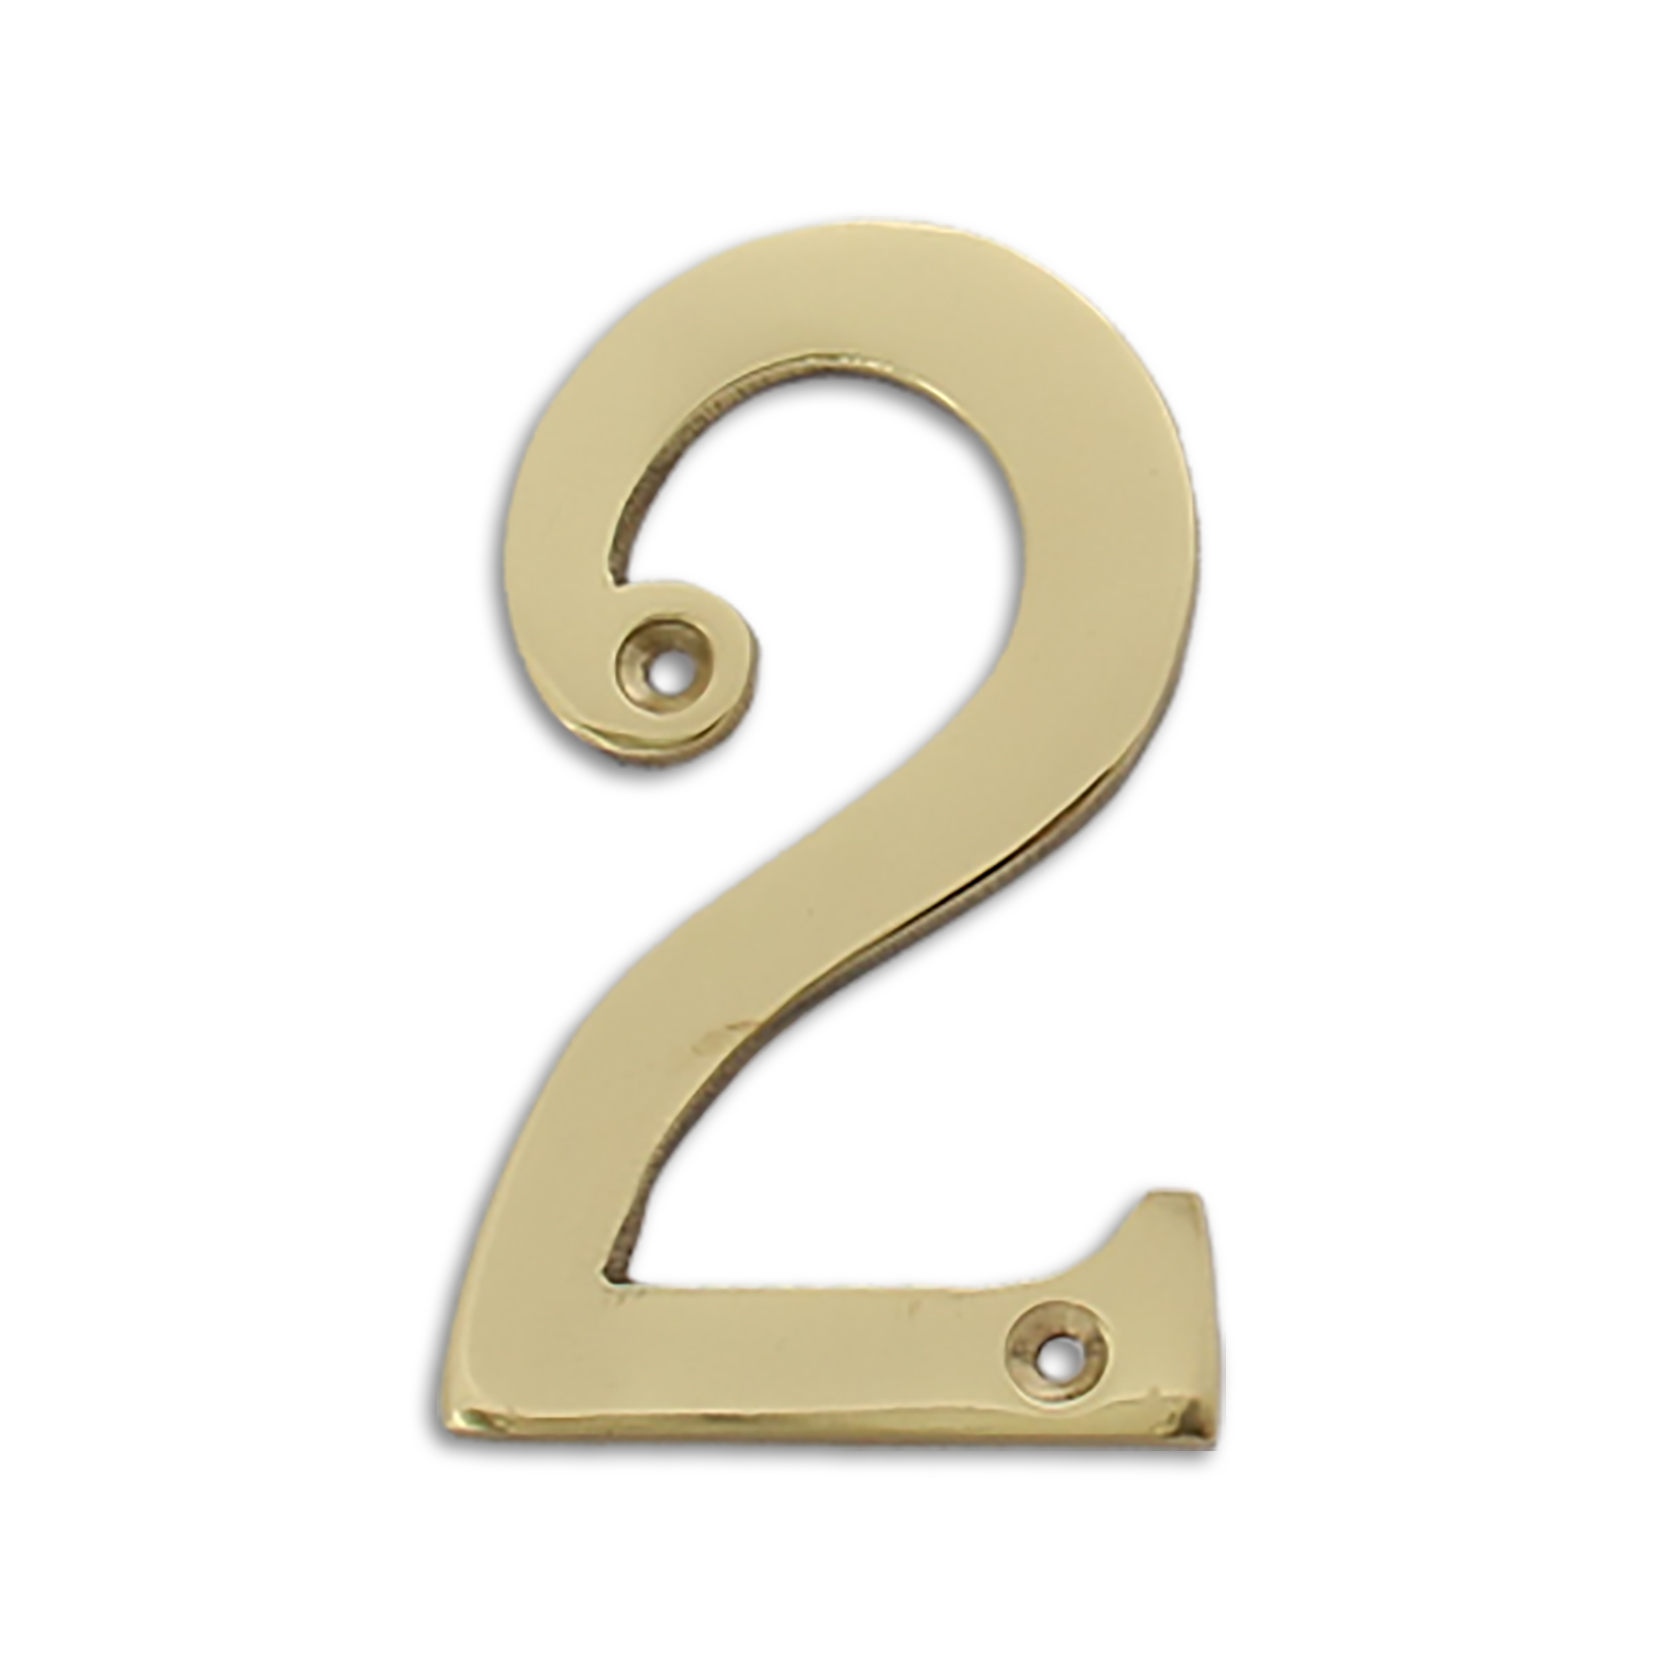 4-inch brass metal house number in polished brass finish - metal number 2